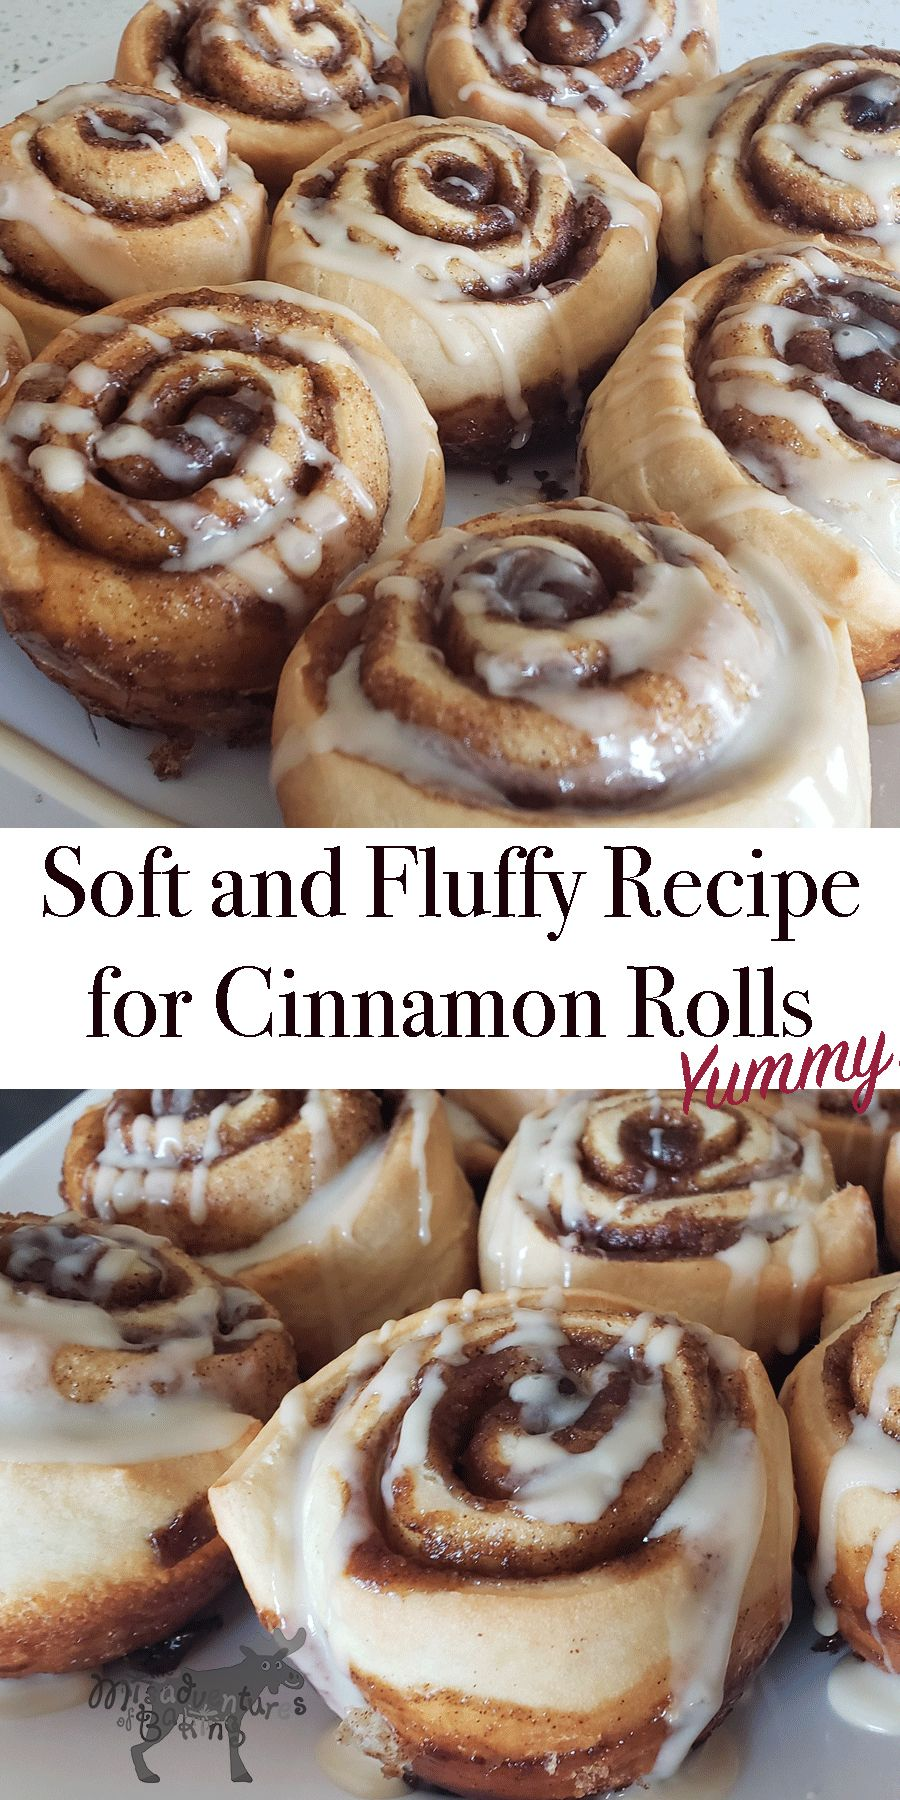 Easy, Homemade Soft and Fluffy Cinnamon Rolls